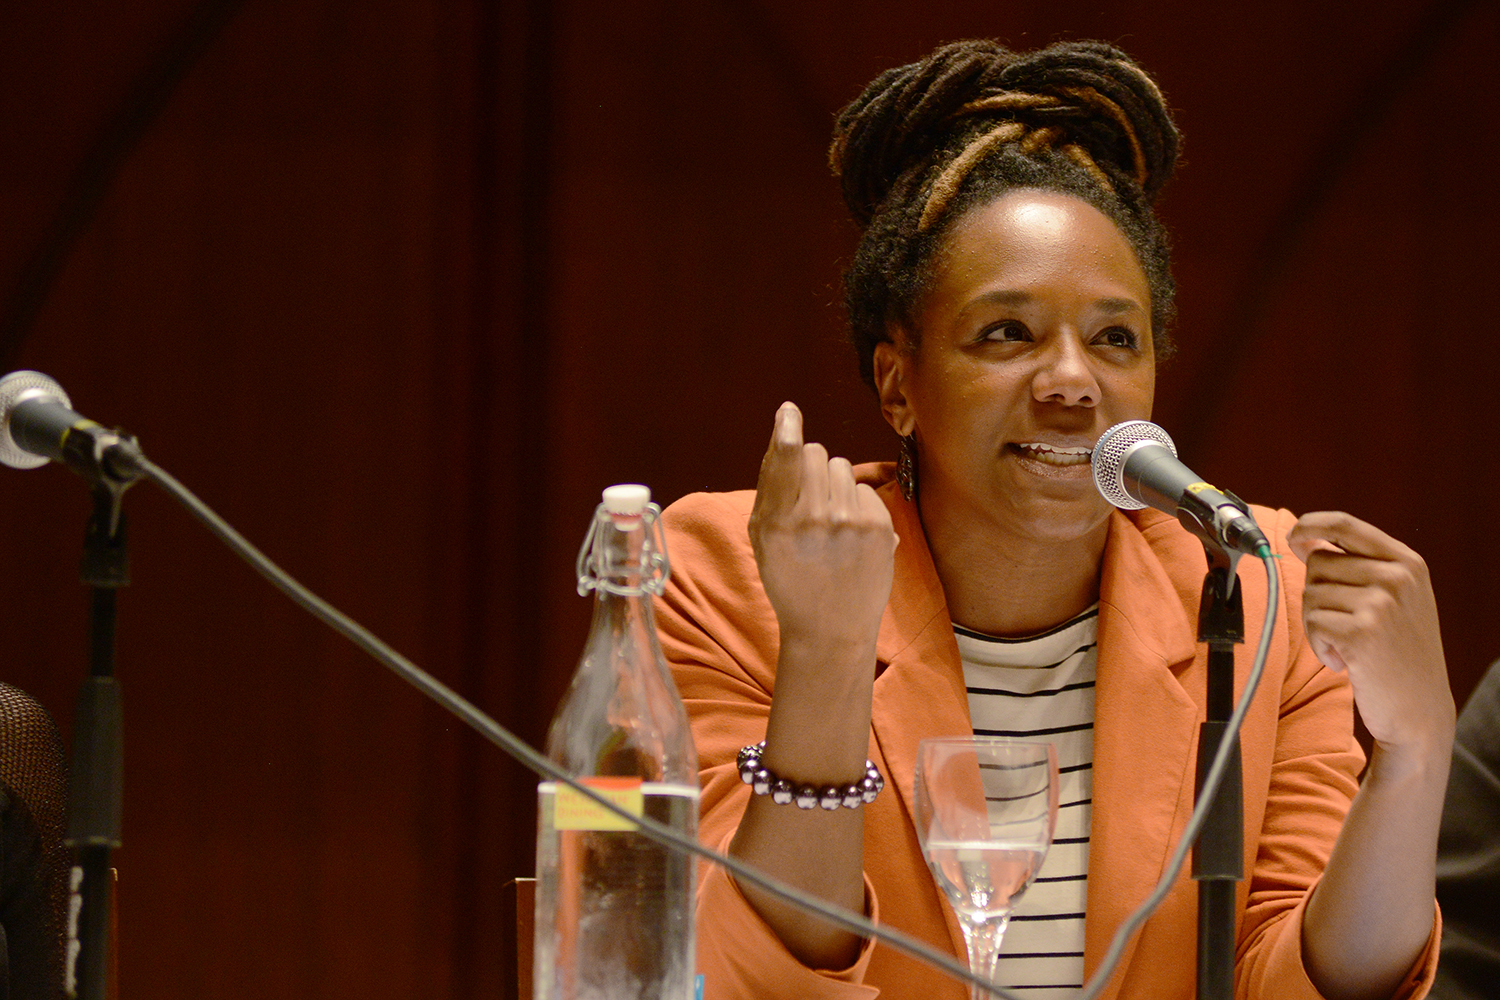 "Bree Newsome is a graduate of New York University's Tisch School of the Arts where she received a BFA in film and television. While still in high school, Newsome created an animated short, THE THREE PRINCES OF IDEA which earned her a $40,000 scholarship from the National Academy of Television Arts and Sciences. In August 2012, Newsome wrote and recorded a rap song, ""SHAKE IT LIKE AN ETCH-A-SKETCH!"", skewering presidential candidate Mitt Romney and criticizing the Republican Party for policies that promote classism and bigotry. A staunch advocate for human rights and social justice, Newsome was arrested last year during a sit-in at the North Carolina State Capitol where she spoke out against the state's recent attack on voting rights. She continues to work as an activist and youth organizer in North Carolina, serving in the capacity of Western Field Organizer for the youth-led organization Ignite NC."